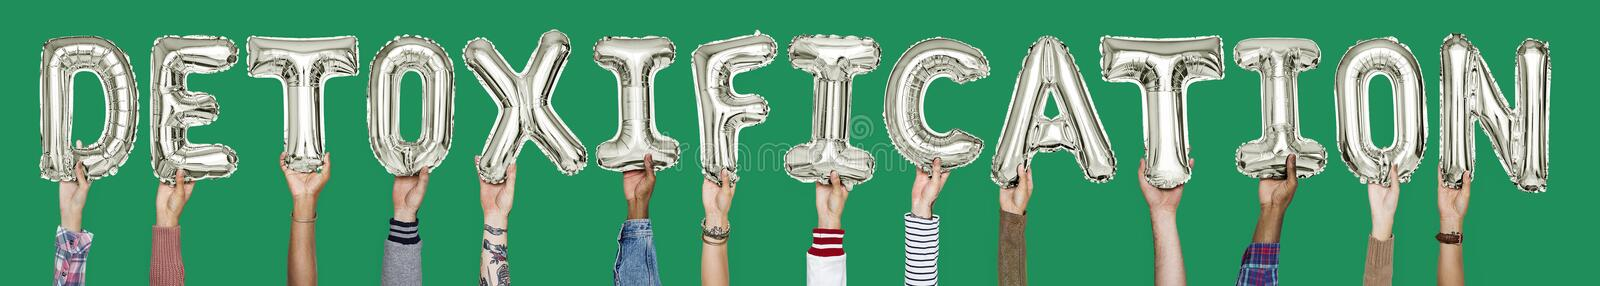 Hands holding detoxification word in balloon letters royalty free stock images